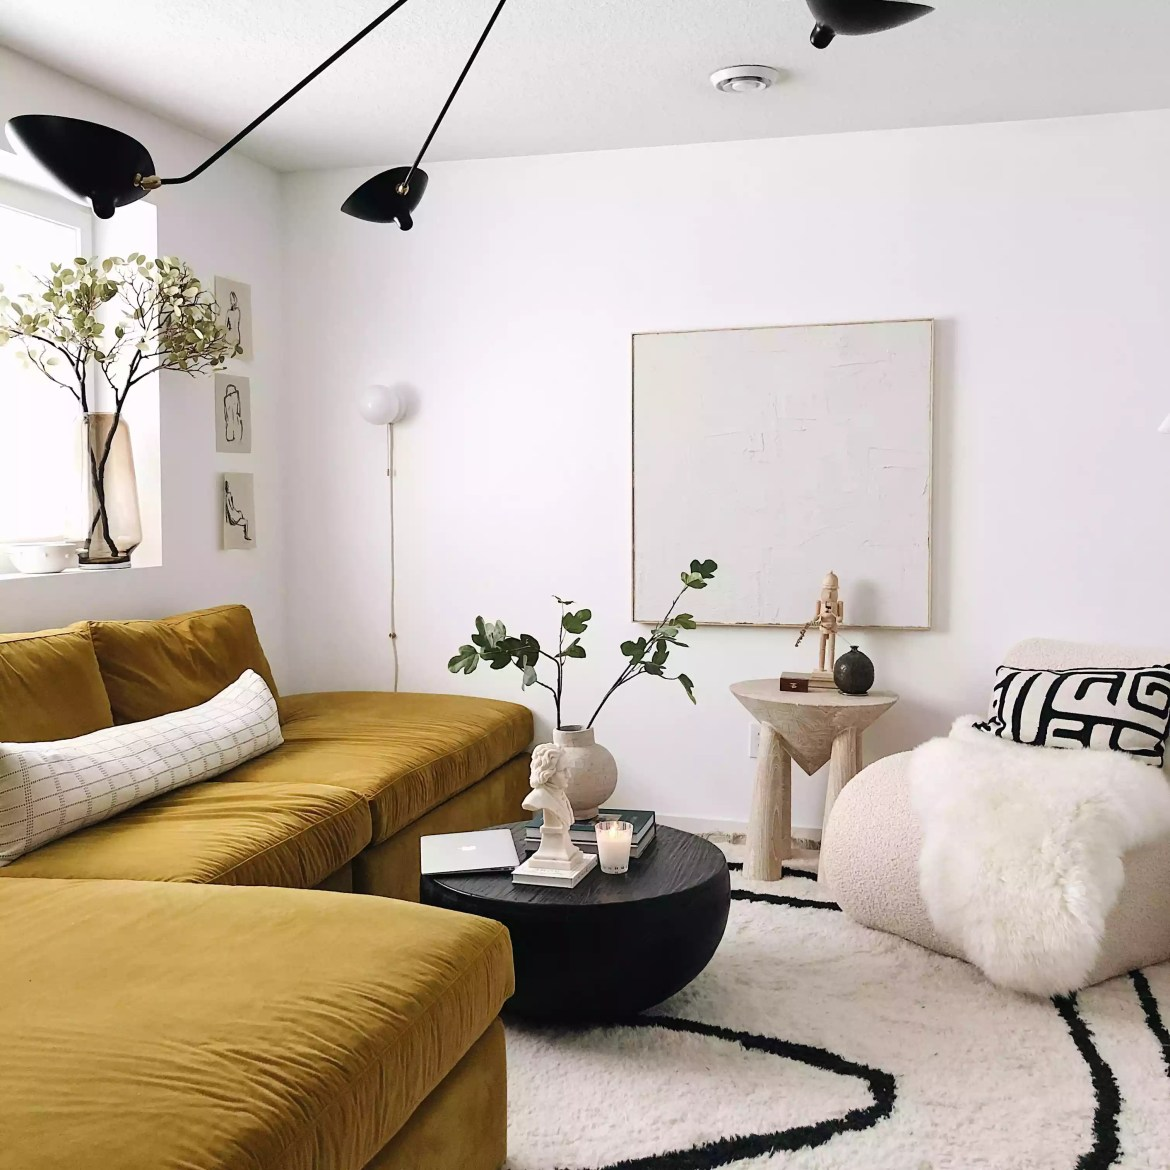 Cozy space with yellow velvet couch and modern light fixture.